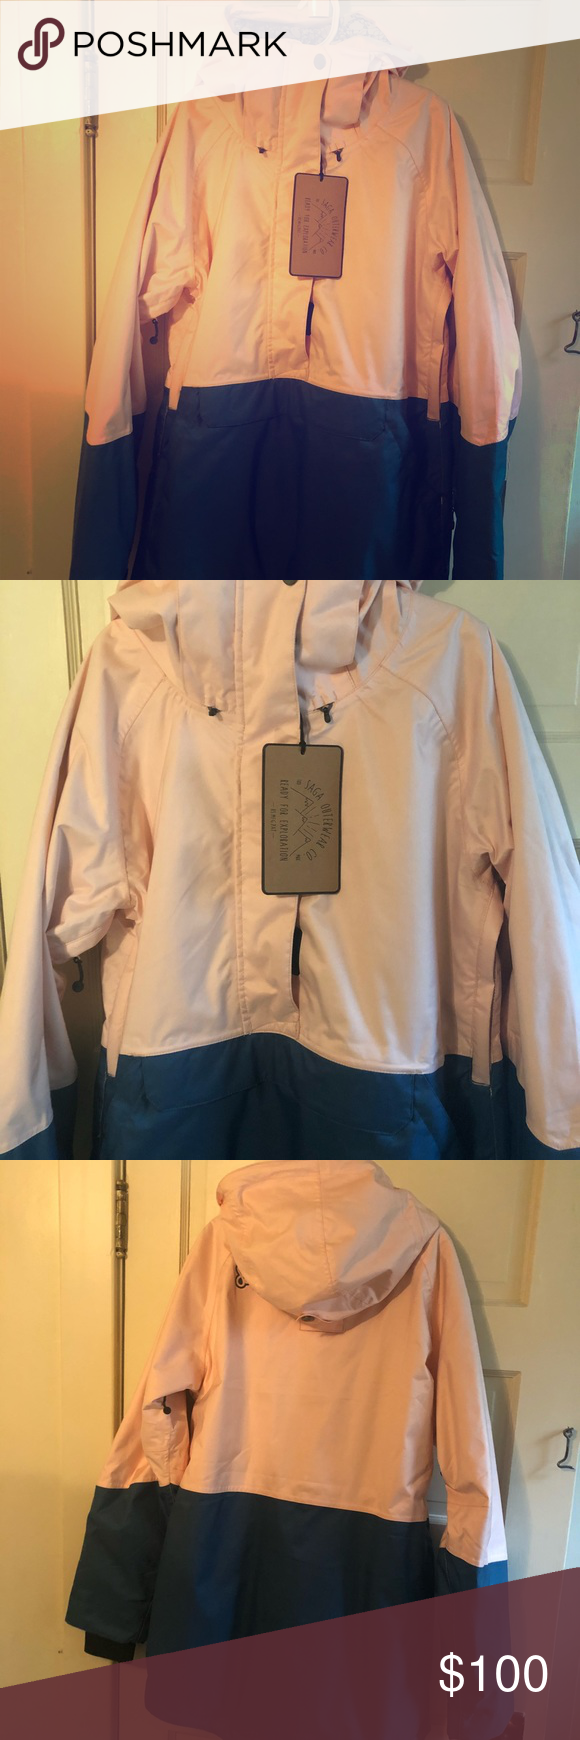 Nwt Saga Rouge Pullover Jacket Snow Outerwear Outerwear Pullover Jacket Saga Outerwear [ 1740 x 580 Pixel ]